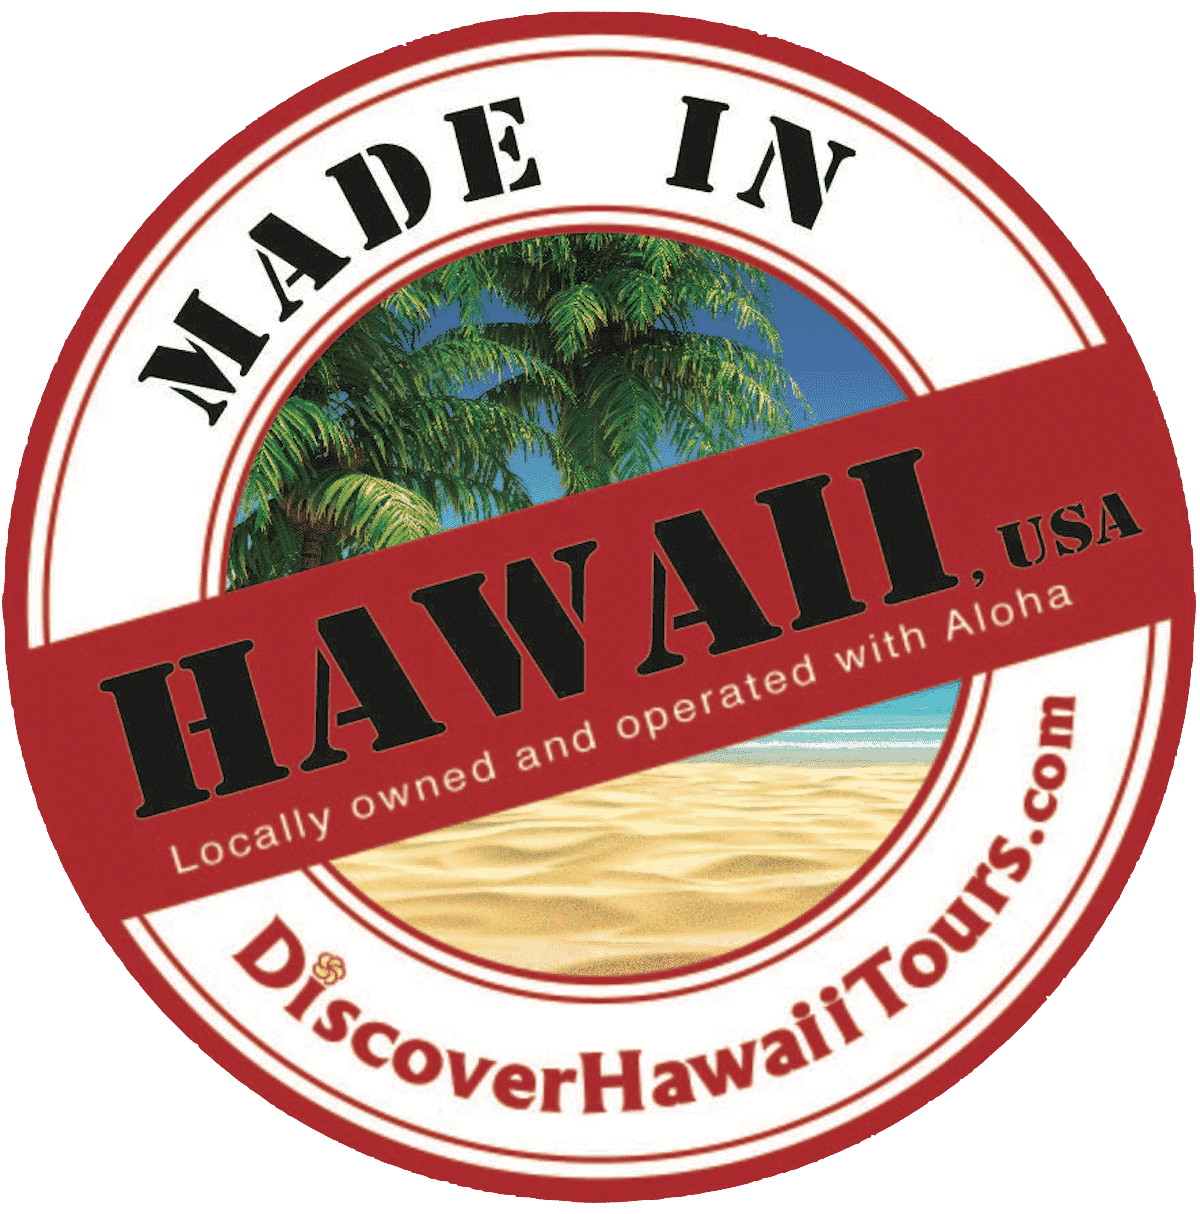 Pearl Harbor tours, Guided Tours & Sightseeing